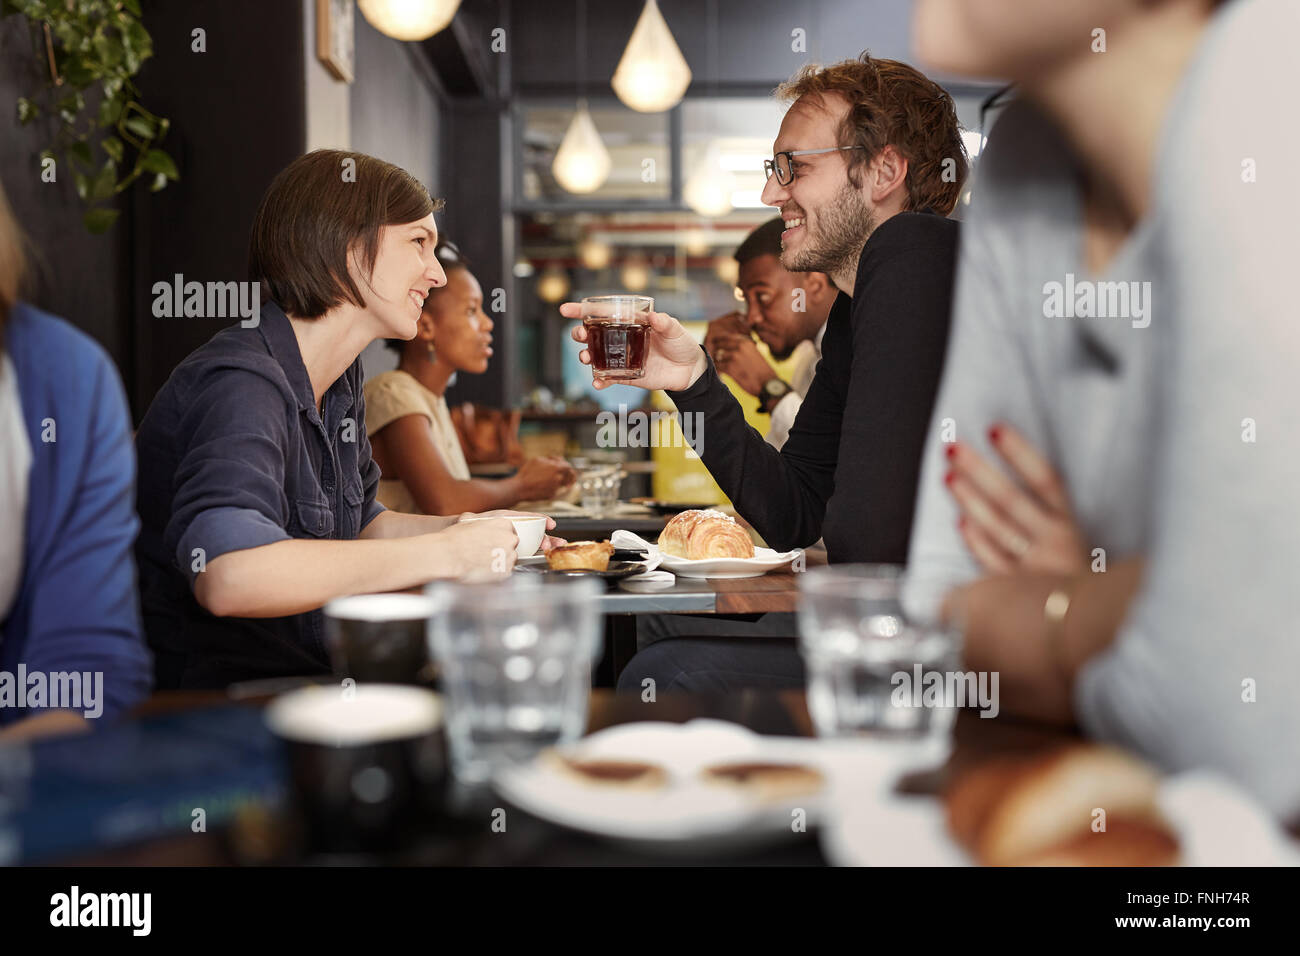 Busy cafe with a young couple smiling at each other - Stock Image